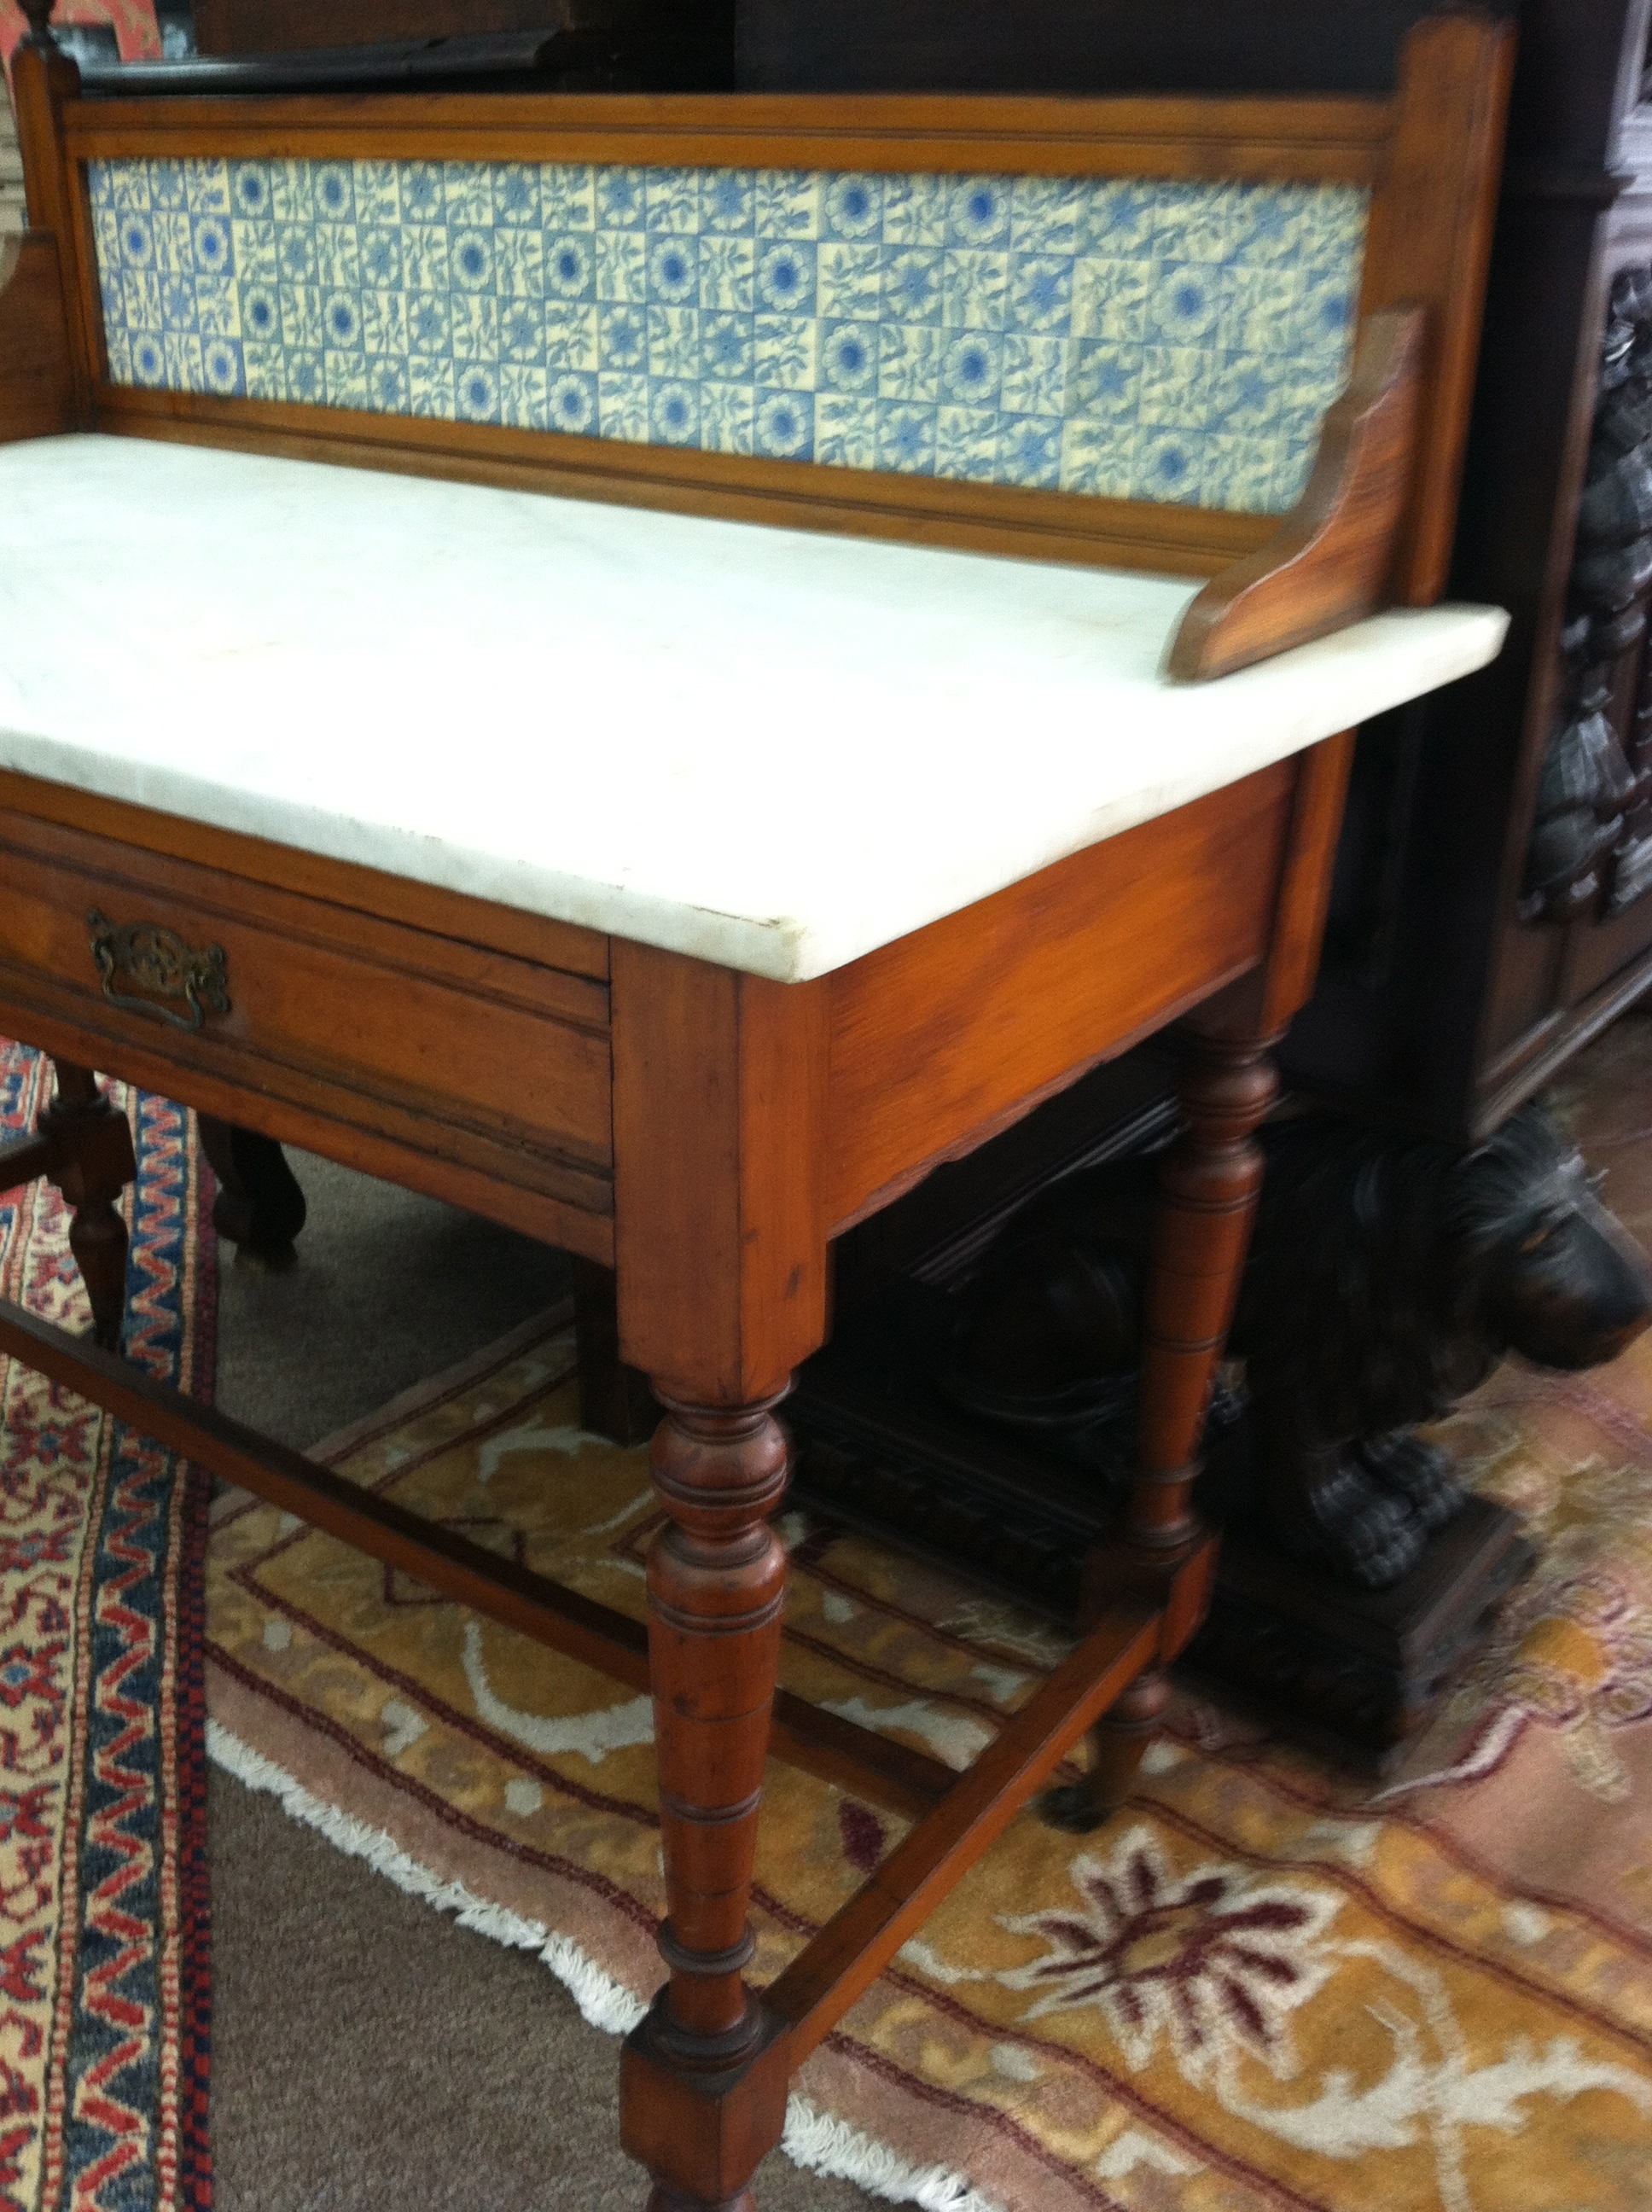 Gorgeous Antique Marble Top Wash Stand With Blue Tile Backsplash Circa 19th  Century   For Sale